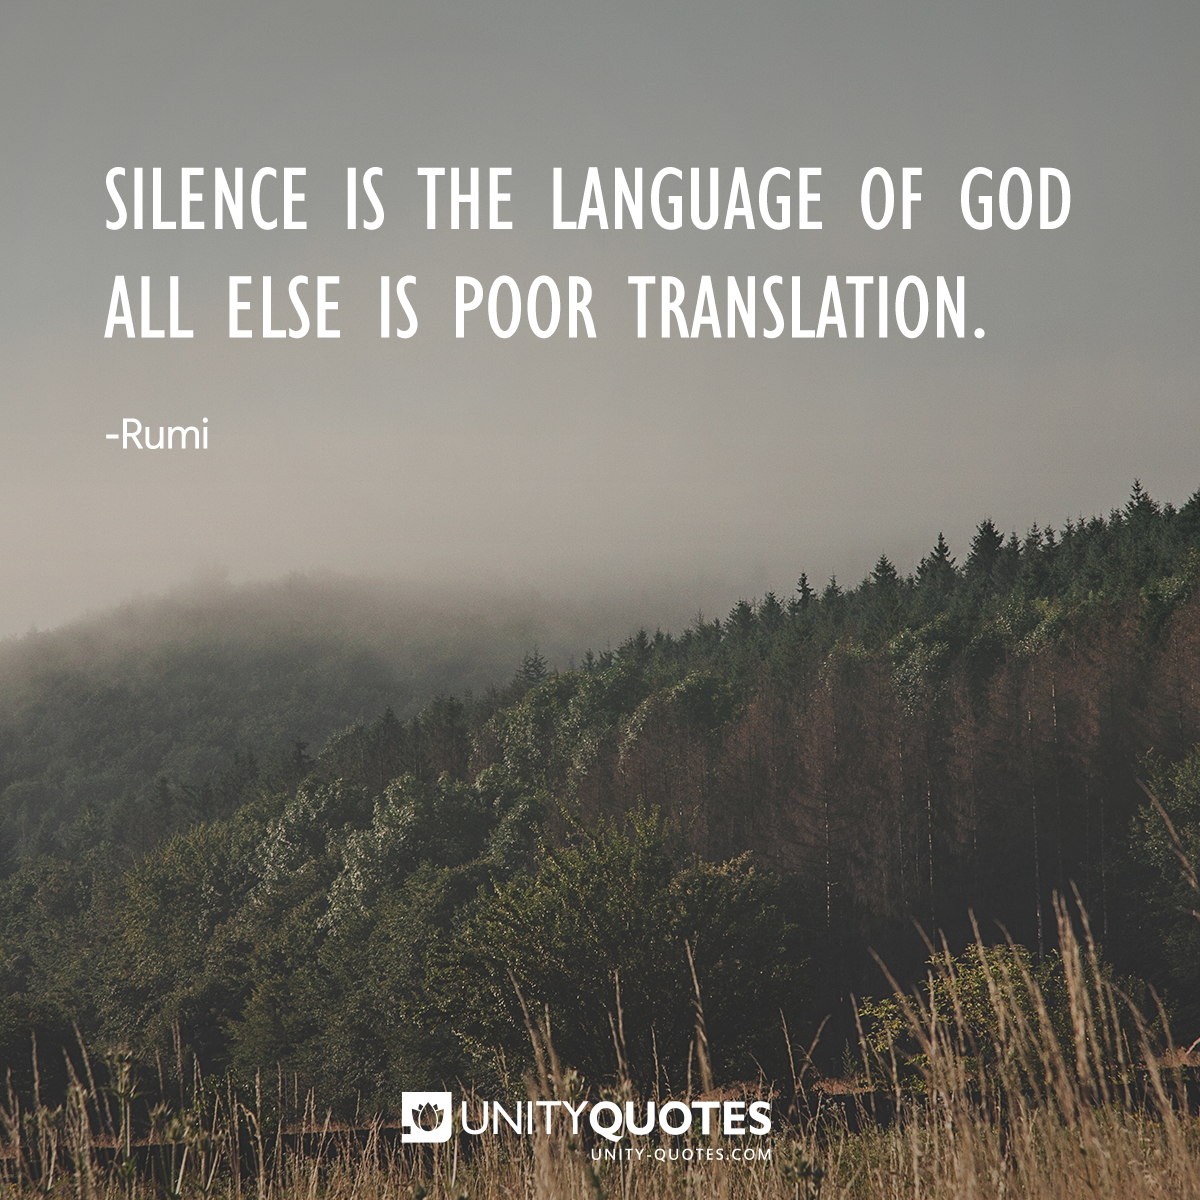 Unity Quotes On Twitter Wonderful Rumi Quotes Silence Unity